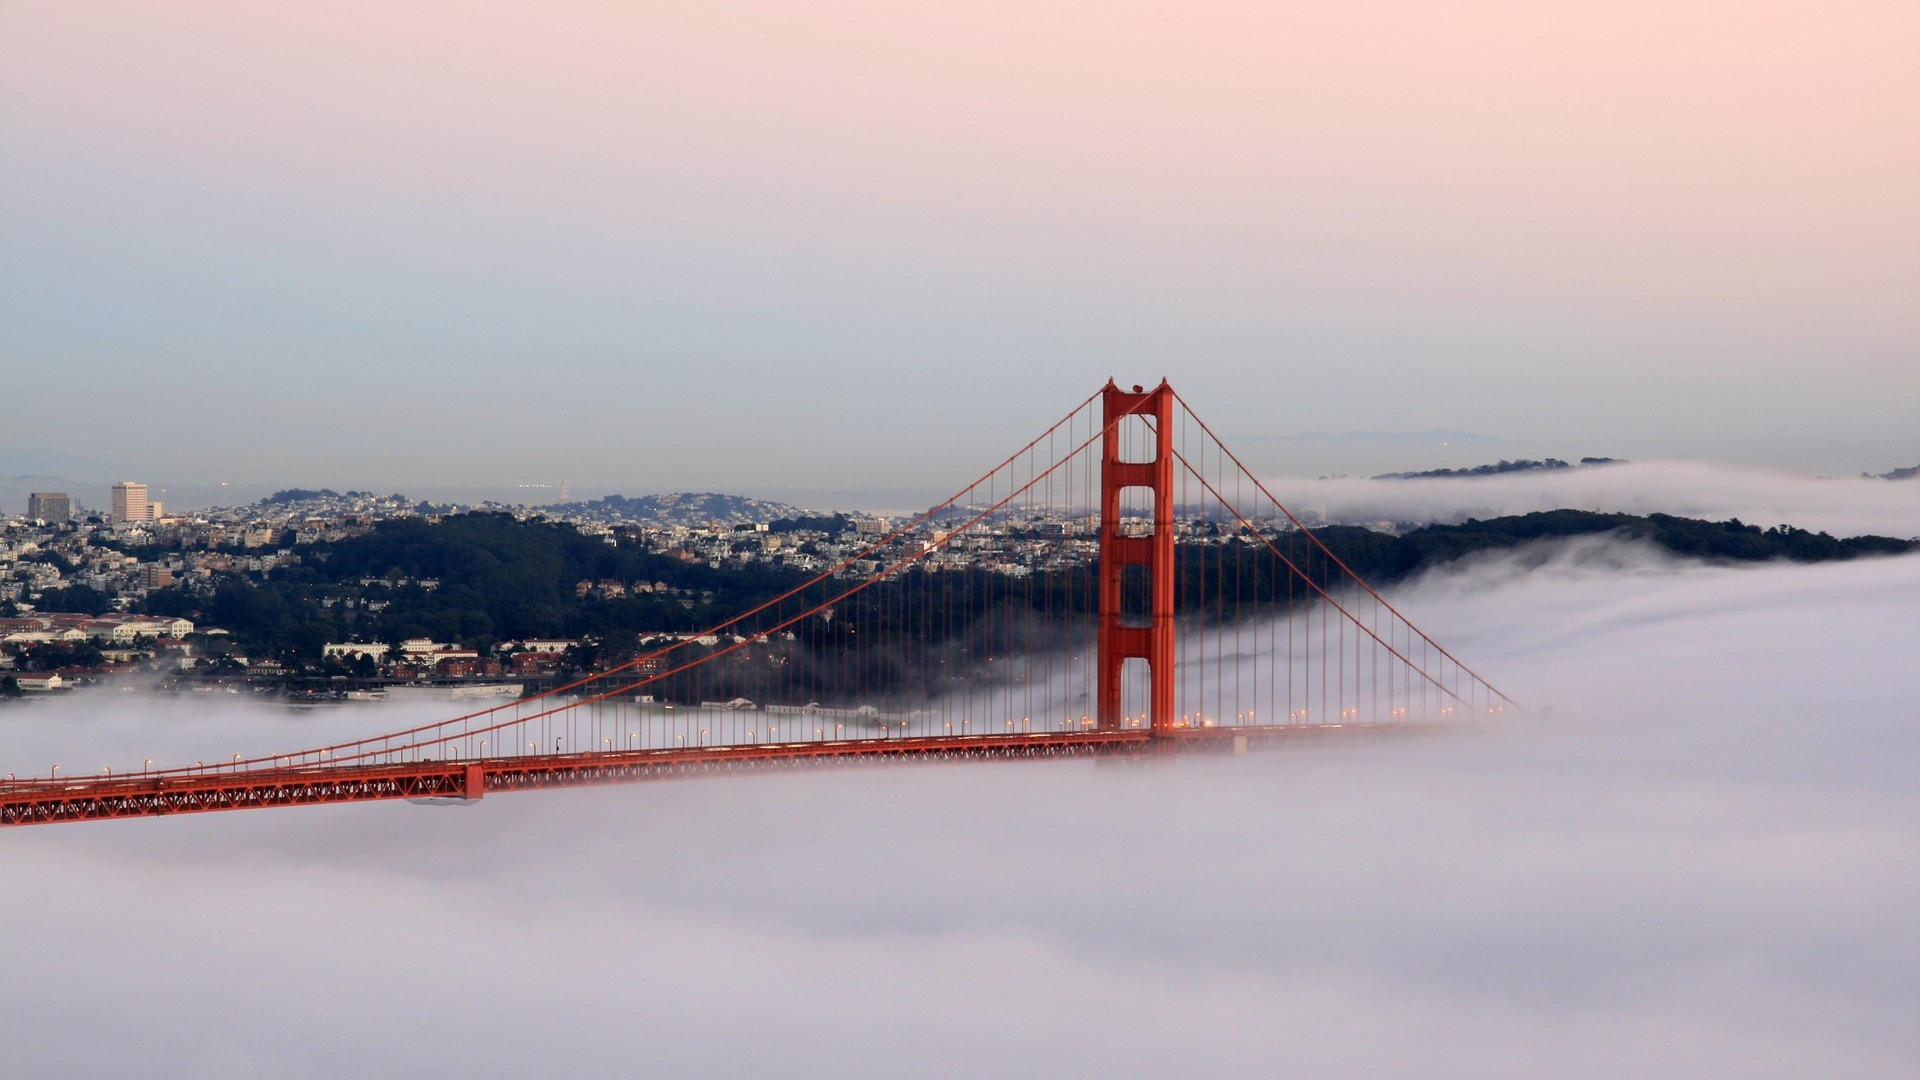 Download Wallpaper 1920x1080 san francisco bridge fog buildings 1920x1080